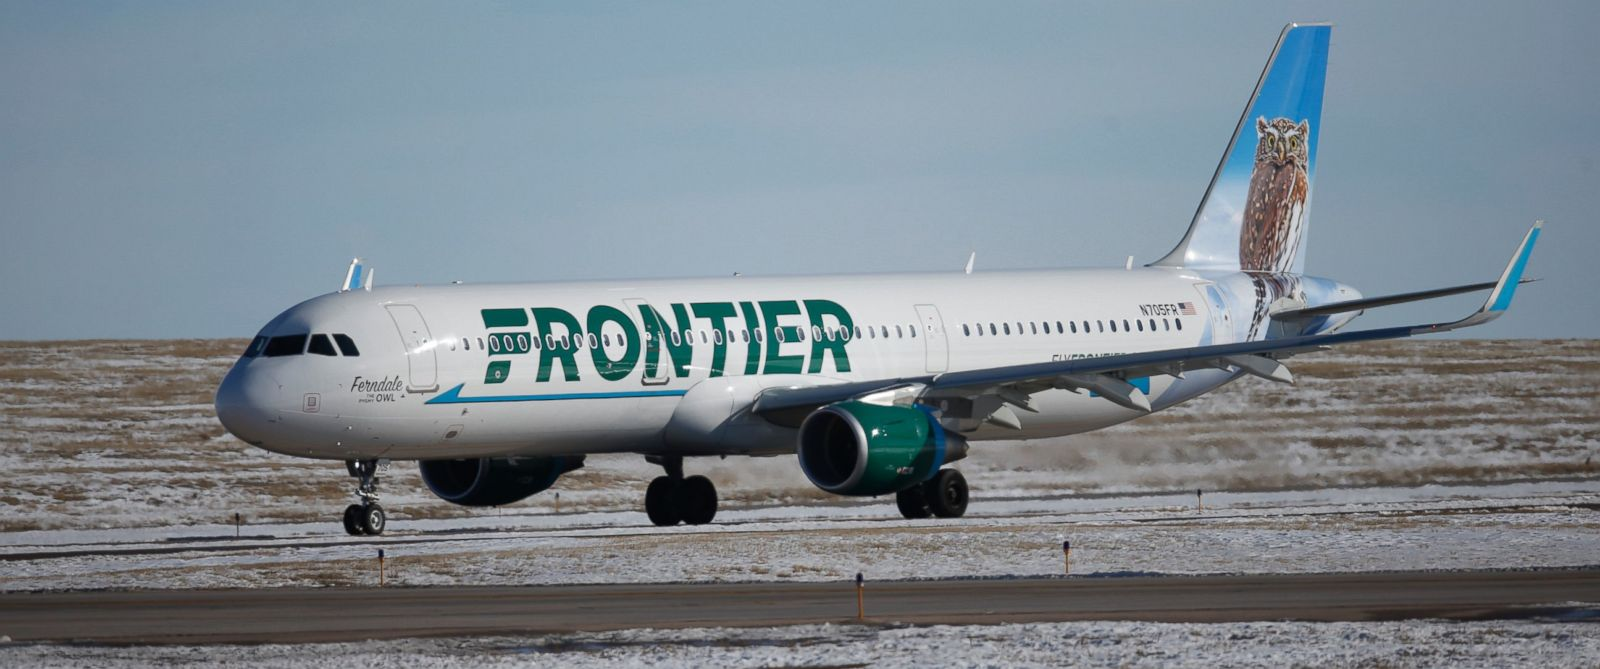 PHOTO: In this photograph taken Feb. 8, 2016, a Frontier Airlines plane heads to a runway at Denver International Airport.